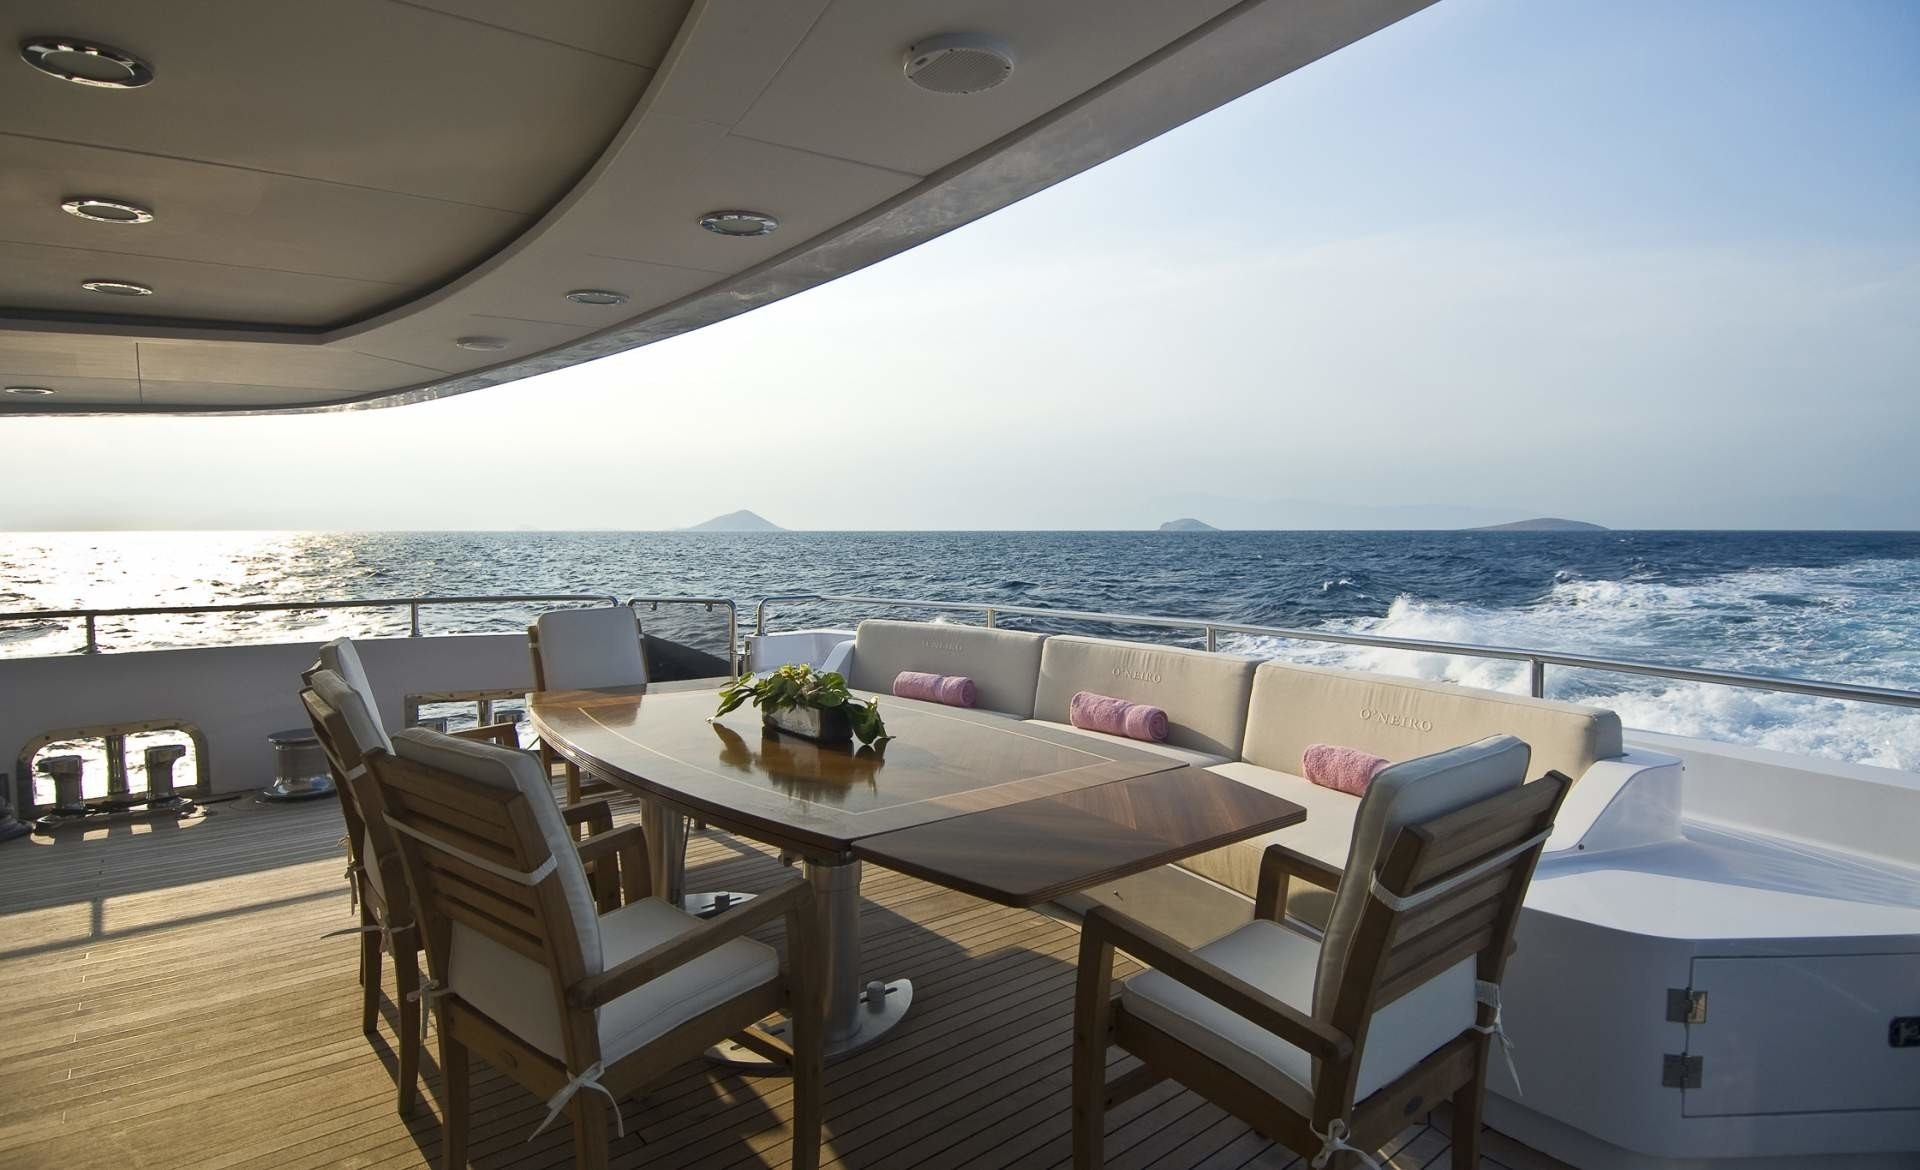 Eating/dining: Yacht O'NEIRO's Aft Deck Captured